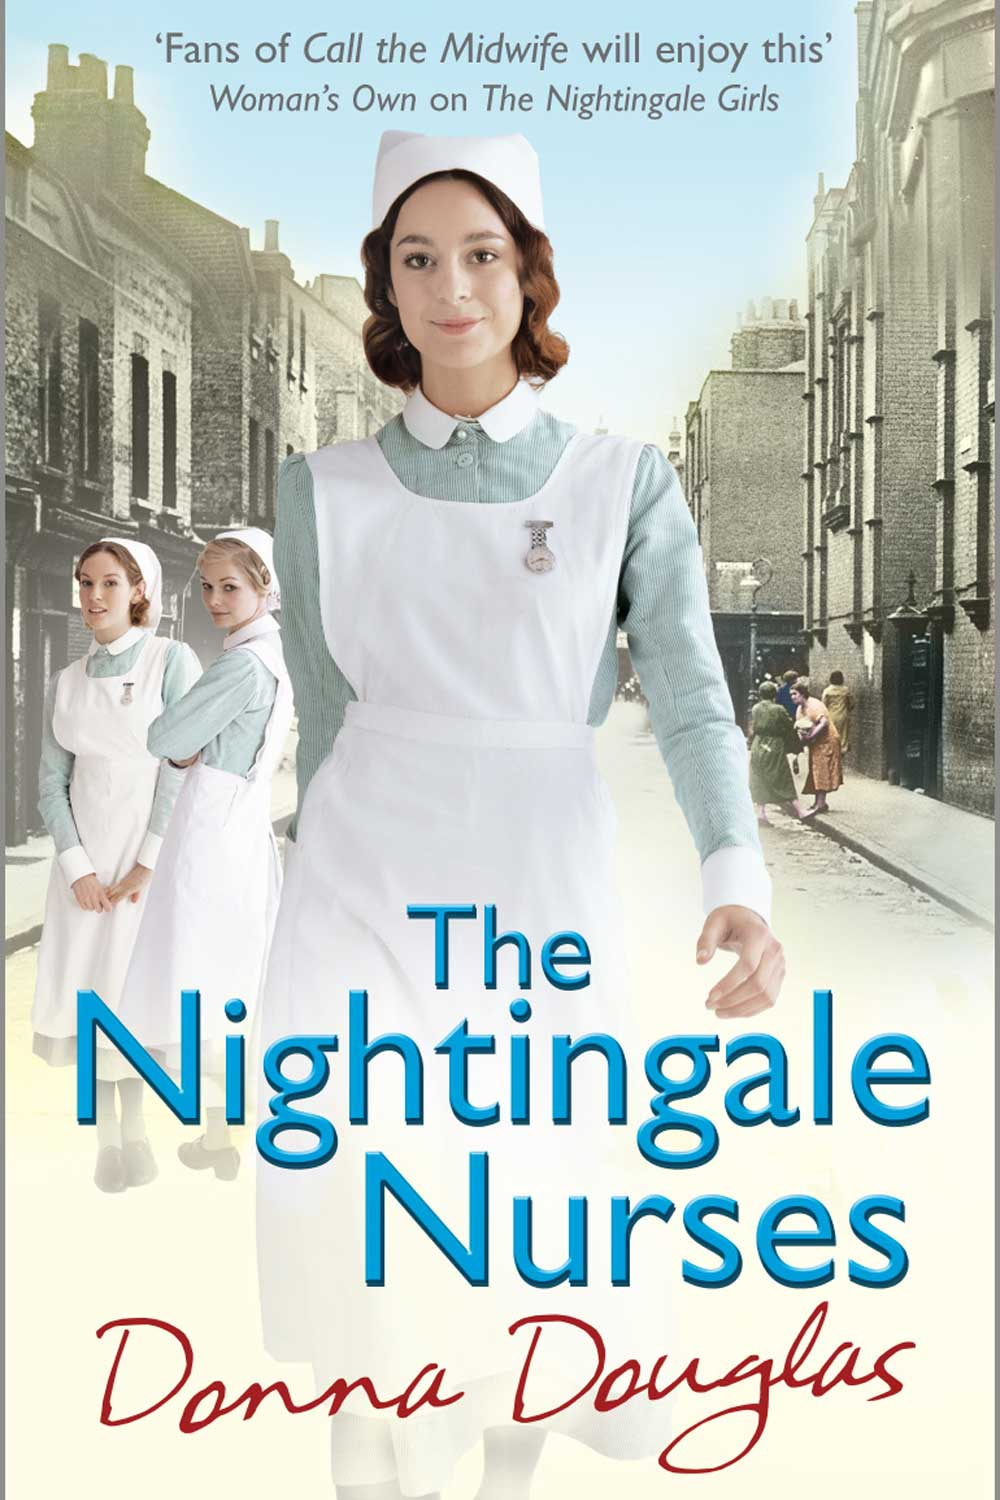 Nightingale-Nurses